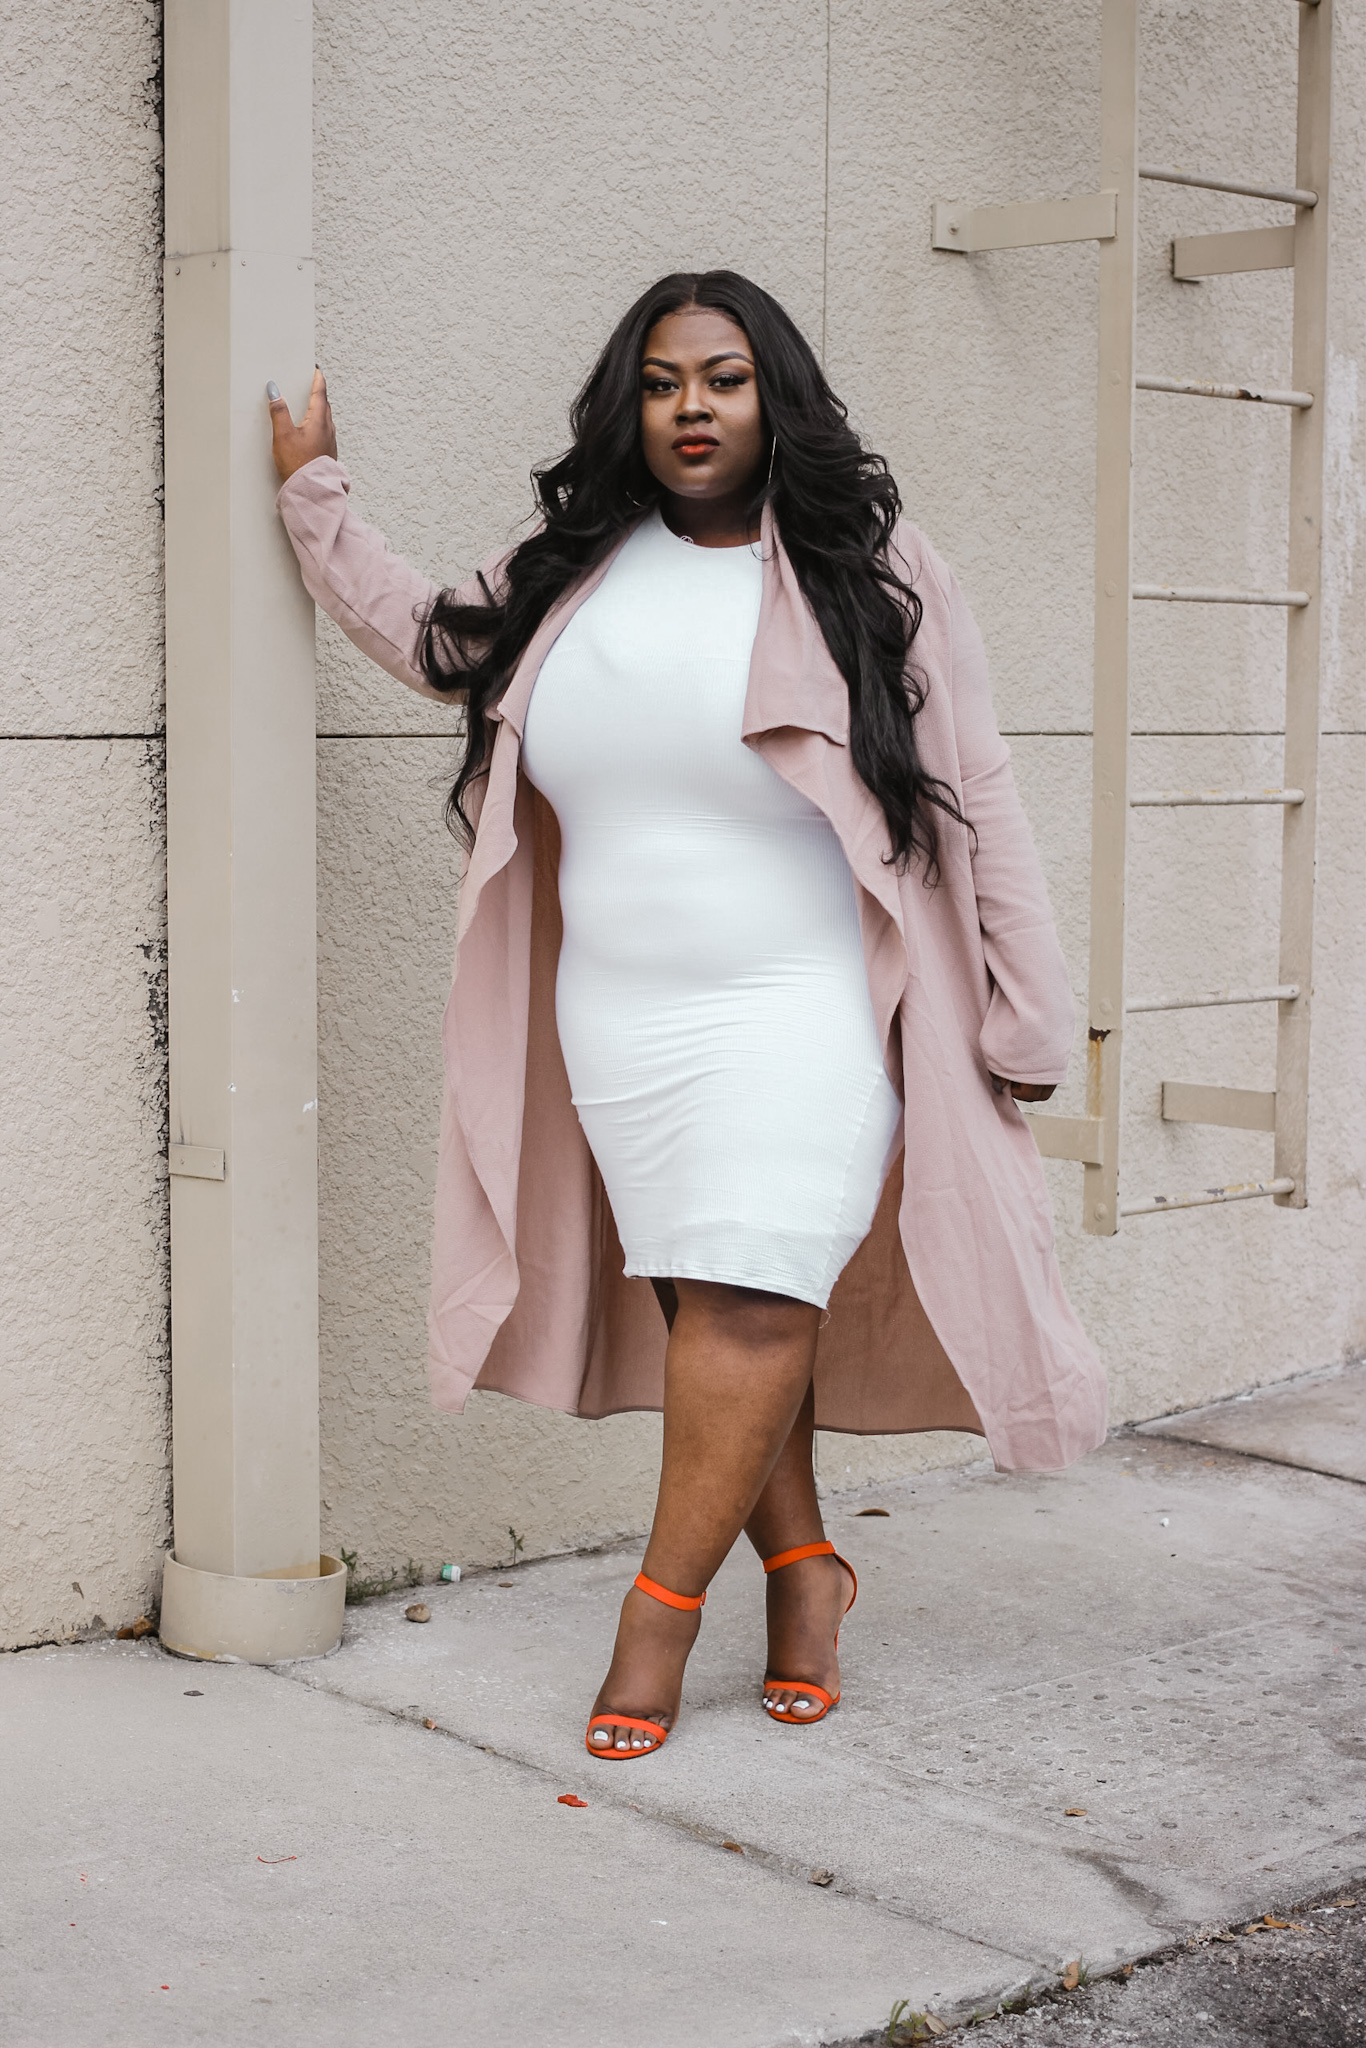 Haez - Haez is a plus-sized model and a lifestyle micro-influencer based in Florida. She represents the full-figured women of today while also catering to her black females supporters by sharing advice on makeup, fashion, dating, dieting and just living life as a black plus-sized millennial woman today. Keep up with Haez's journey as she navigates through life by following her instagram. She drops major gems on her IG story weekly!